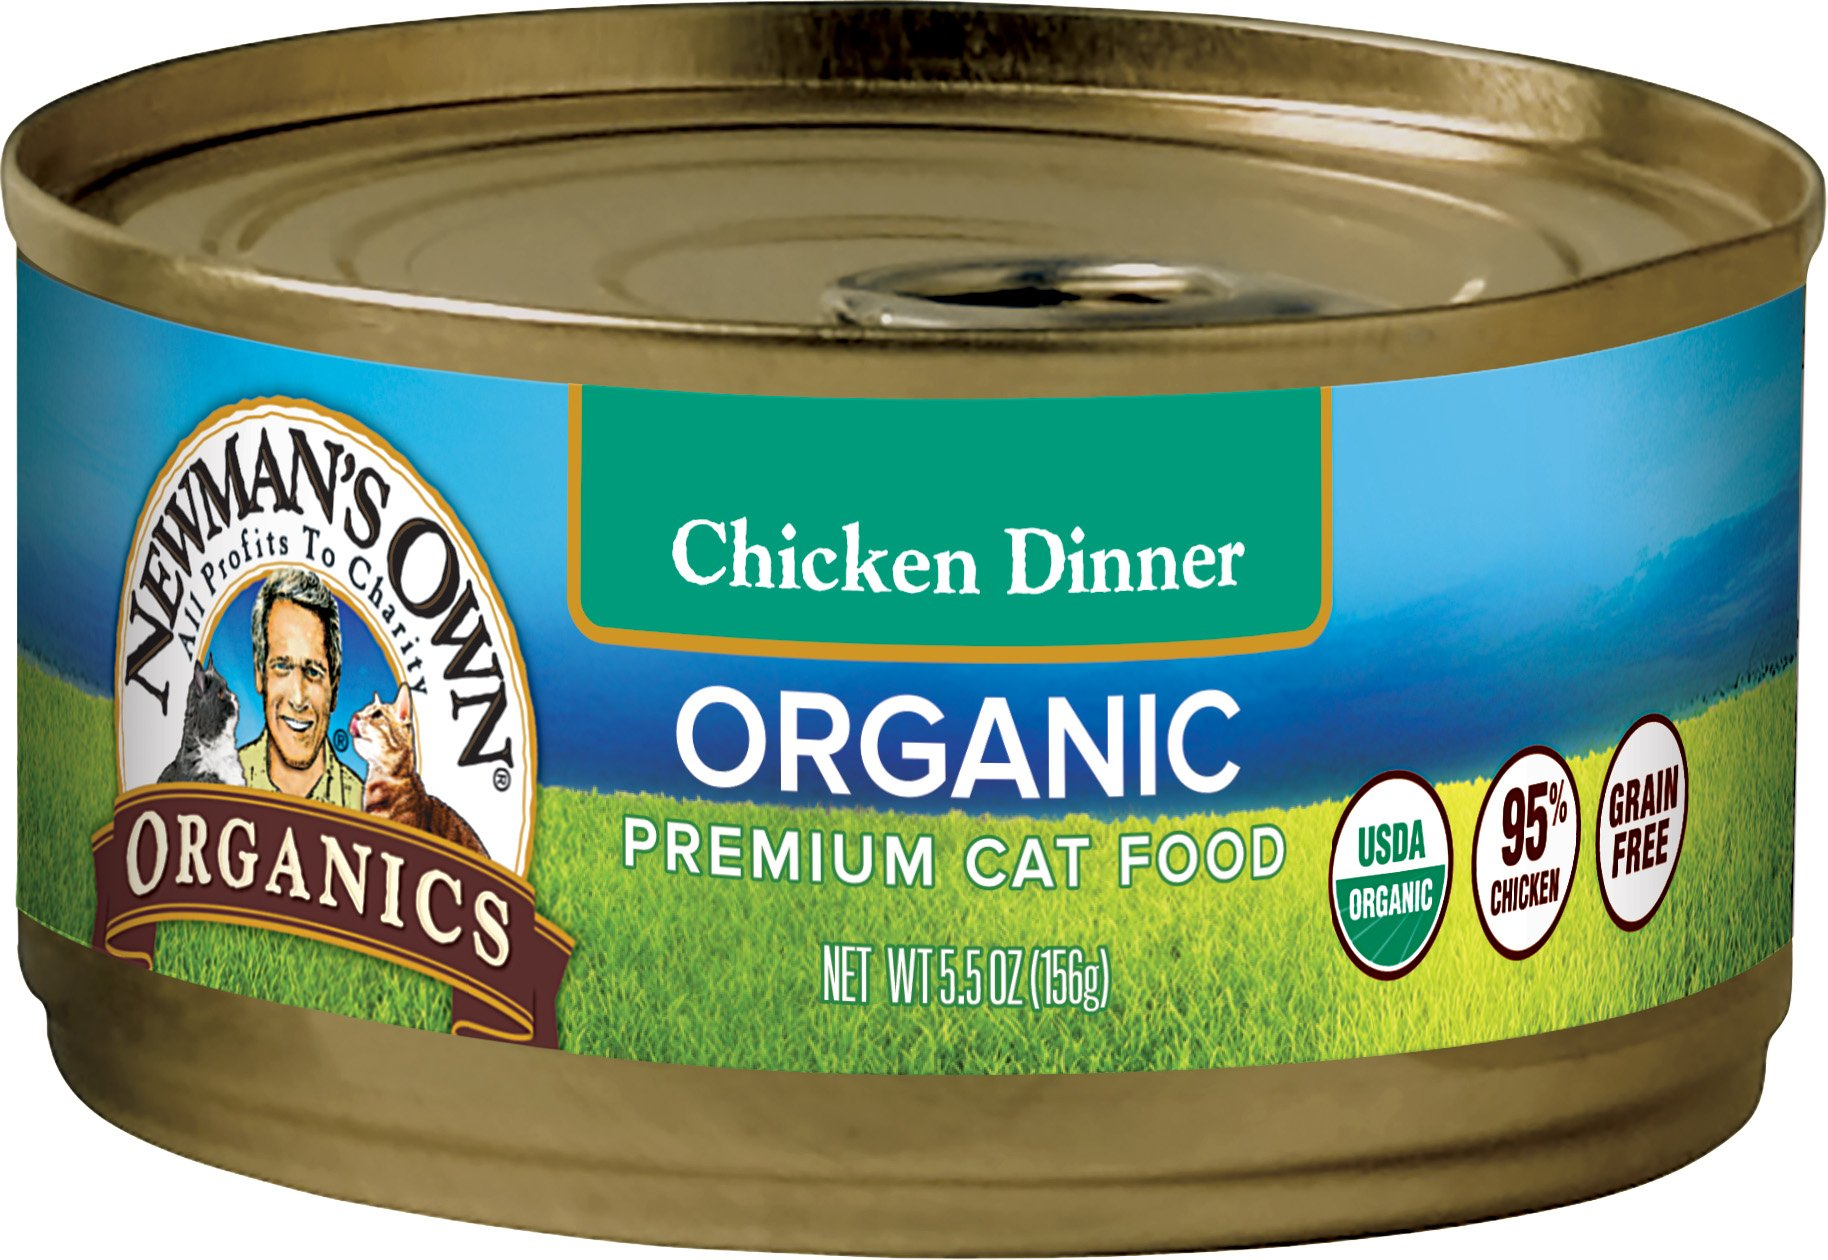 Newman's Own Organics 95% Chicken Dinner Grain-Free Food For Cats, 5.5-Ounce (Pack Of 24) by Newman's Own